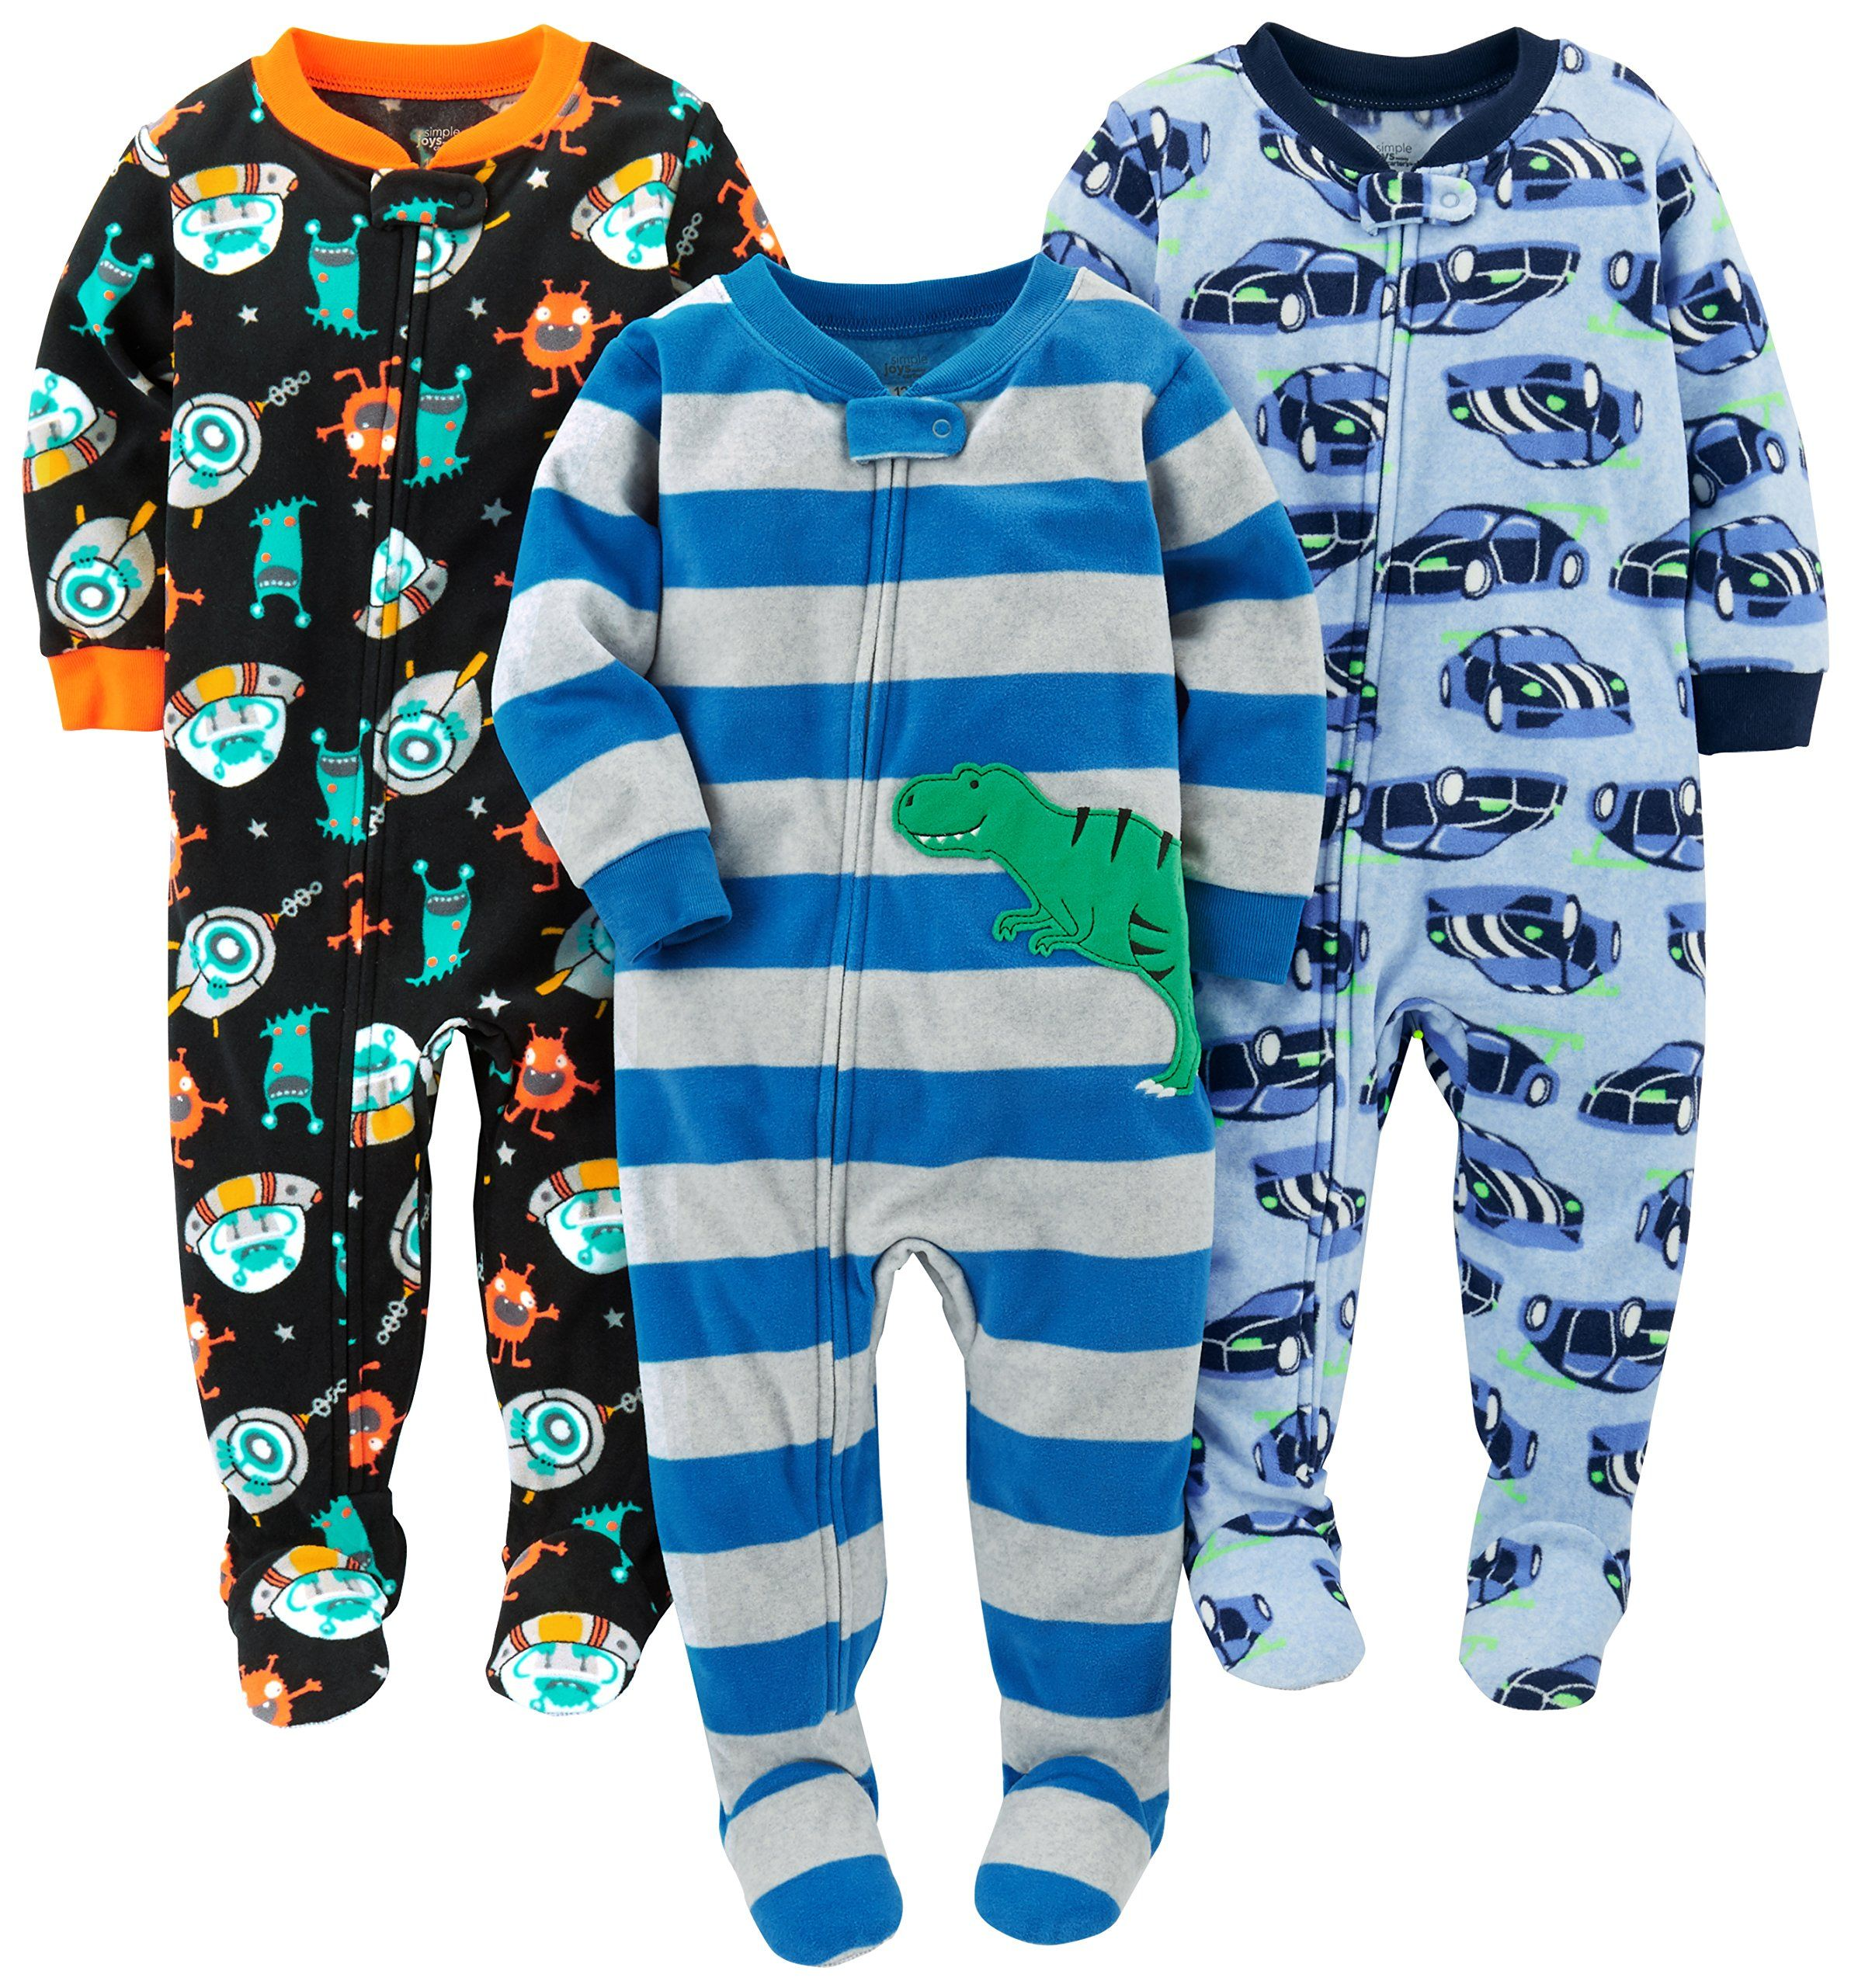 Simple Joys By Carters Baby Boys 3pack Flame Resistant Fleece Footed Pajamas Racer Cars Space Dino 12 Months Find Baby Boy Outfits Boy Outfits Foot Pyjamas